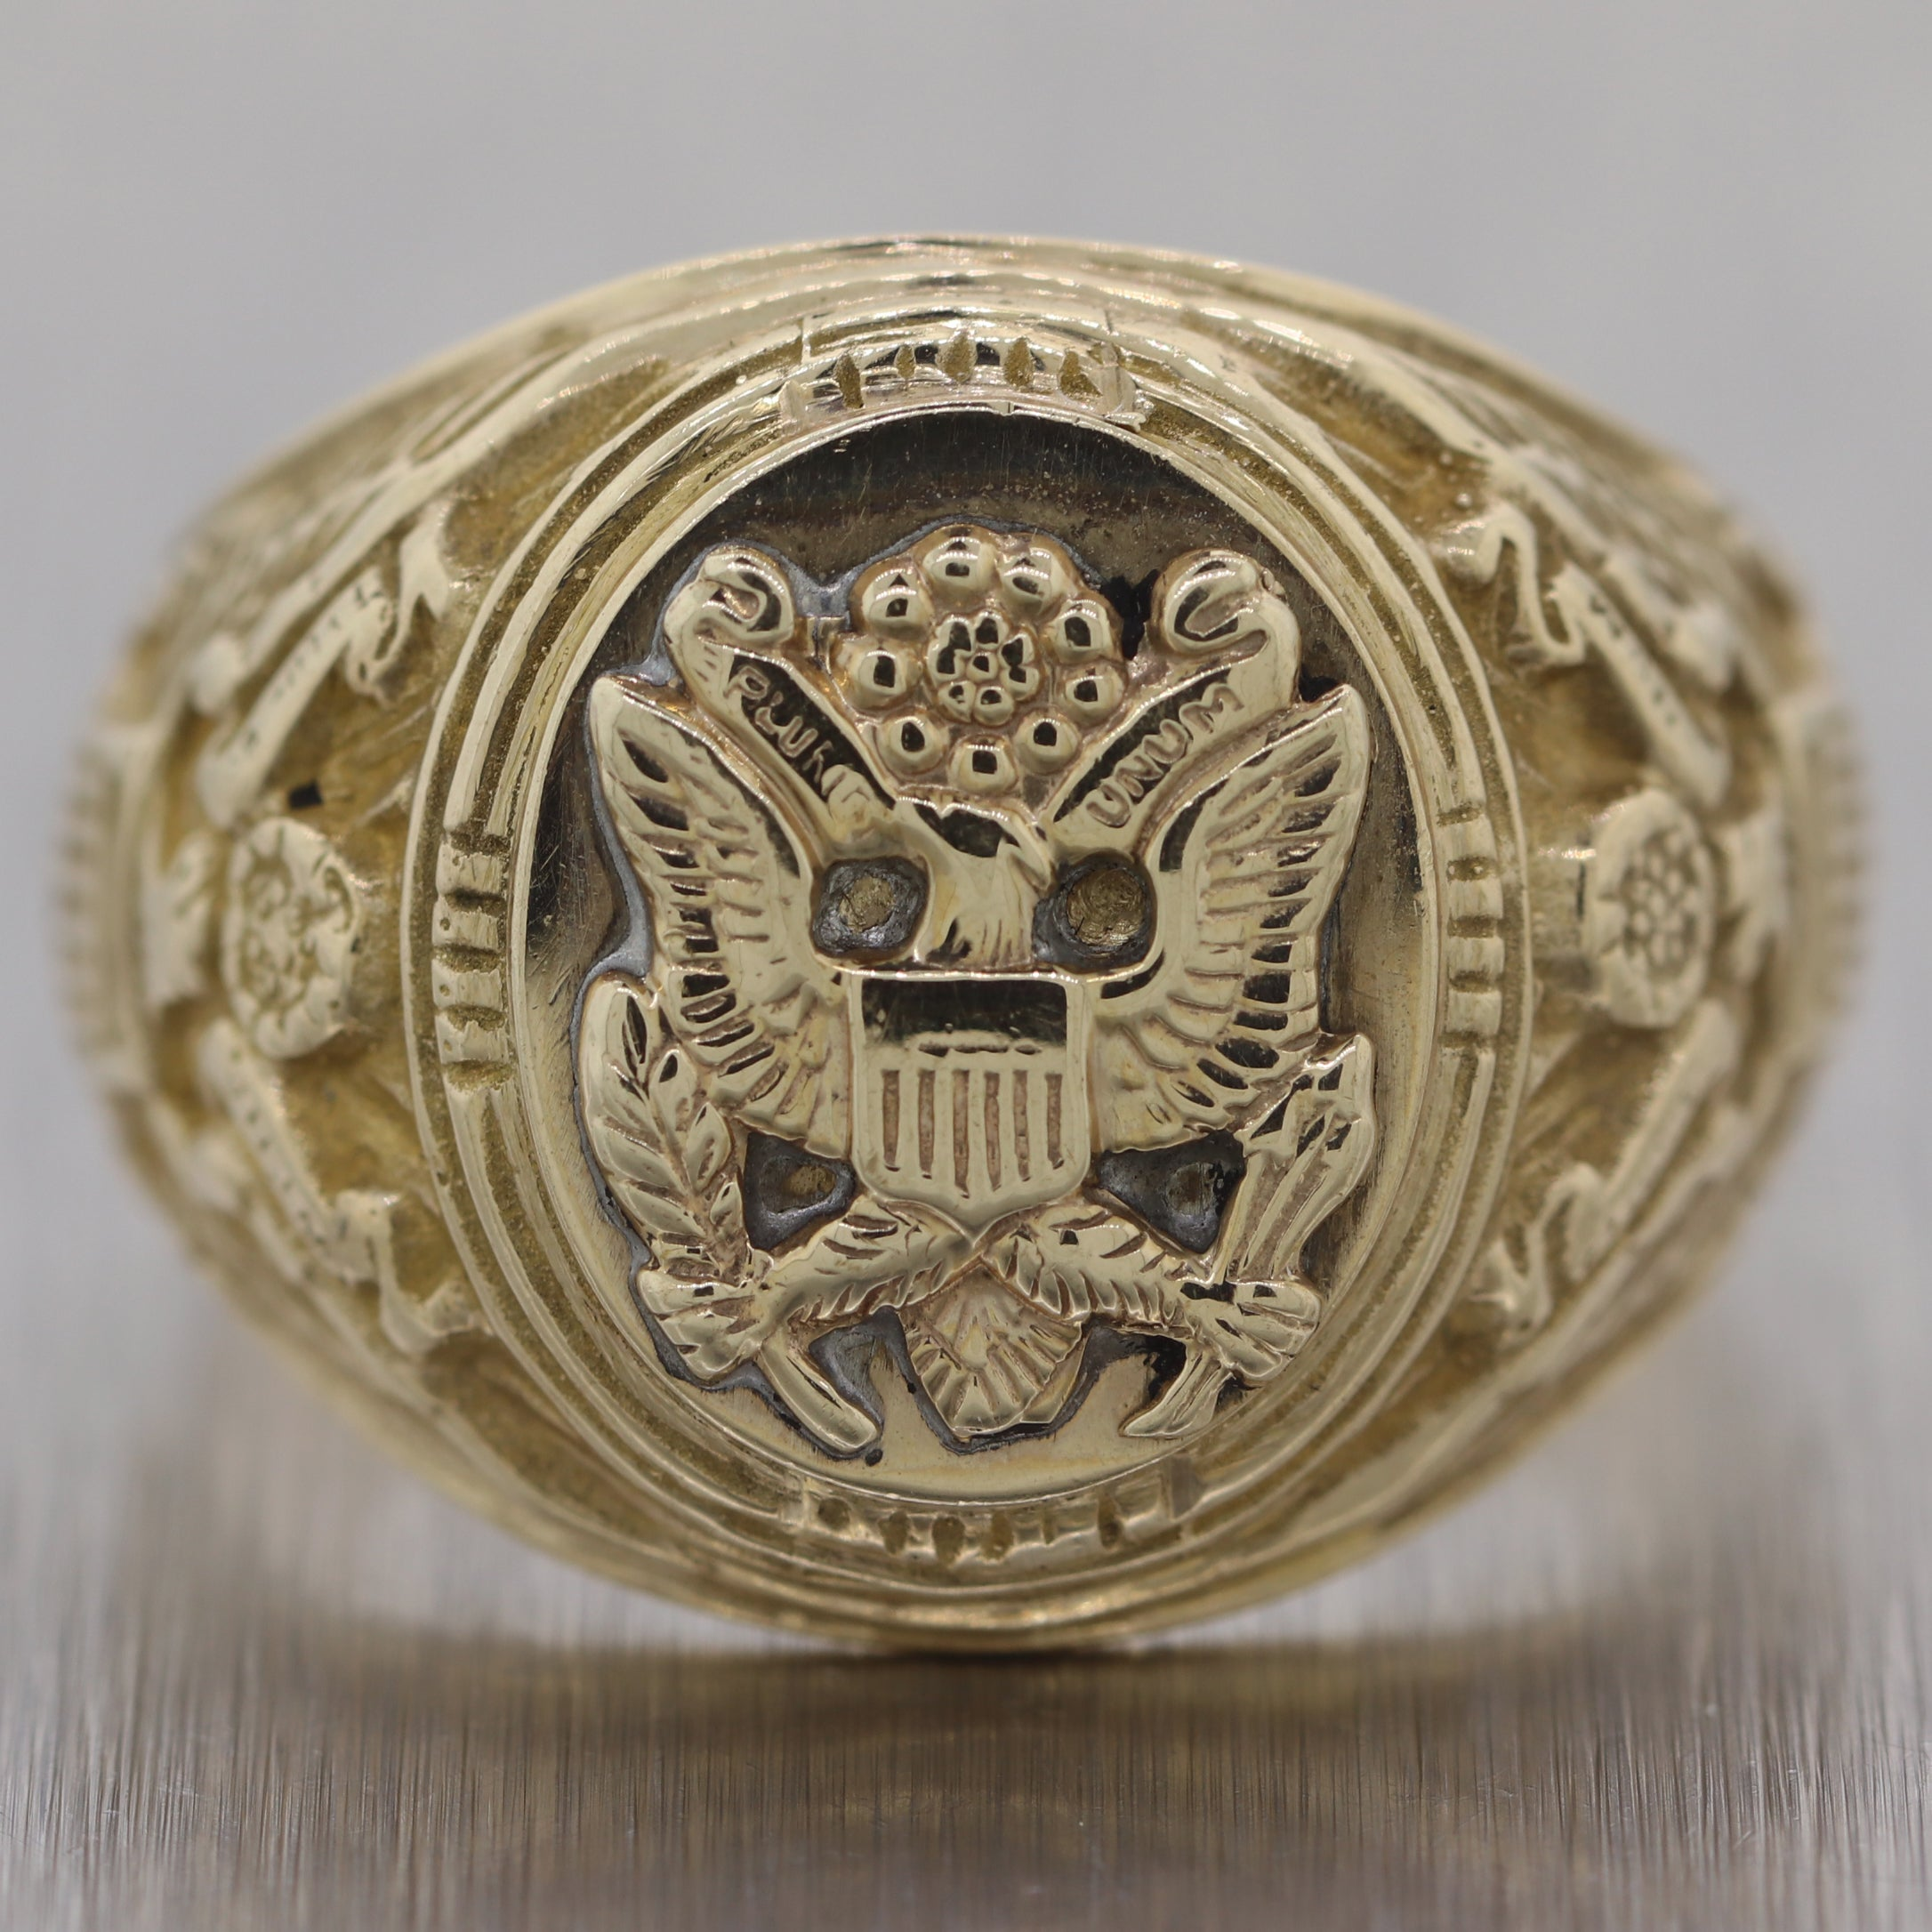 Antique Vintage Estate 10k Yellow Gold United States Army Ring